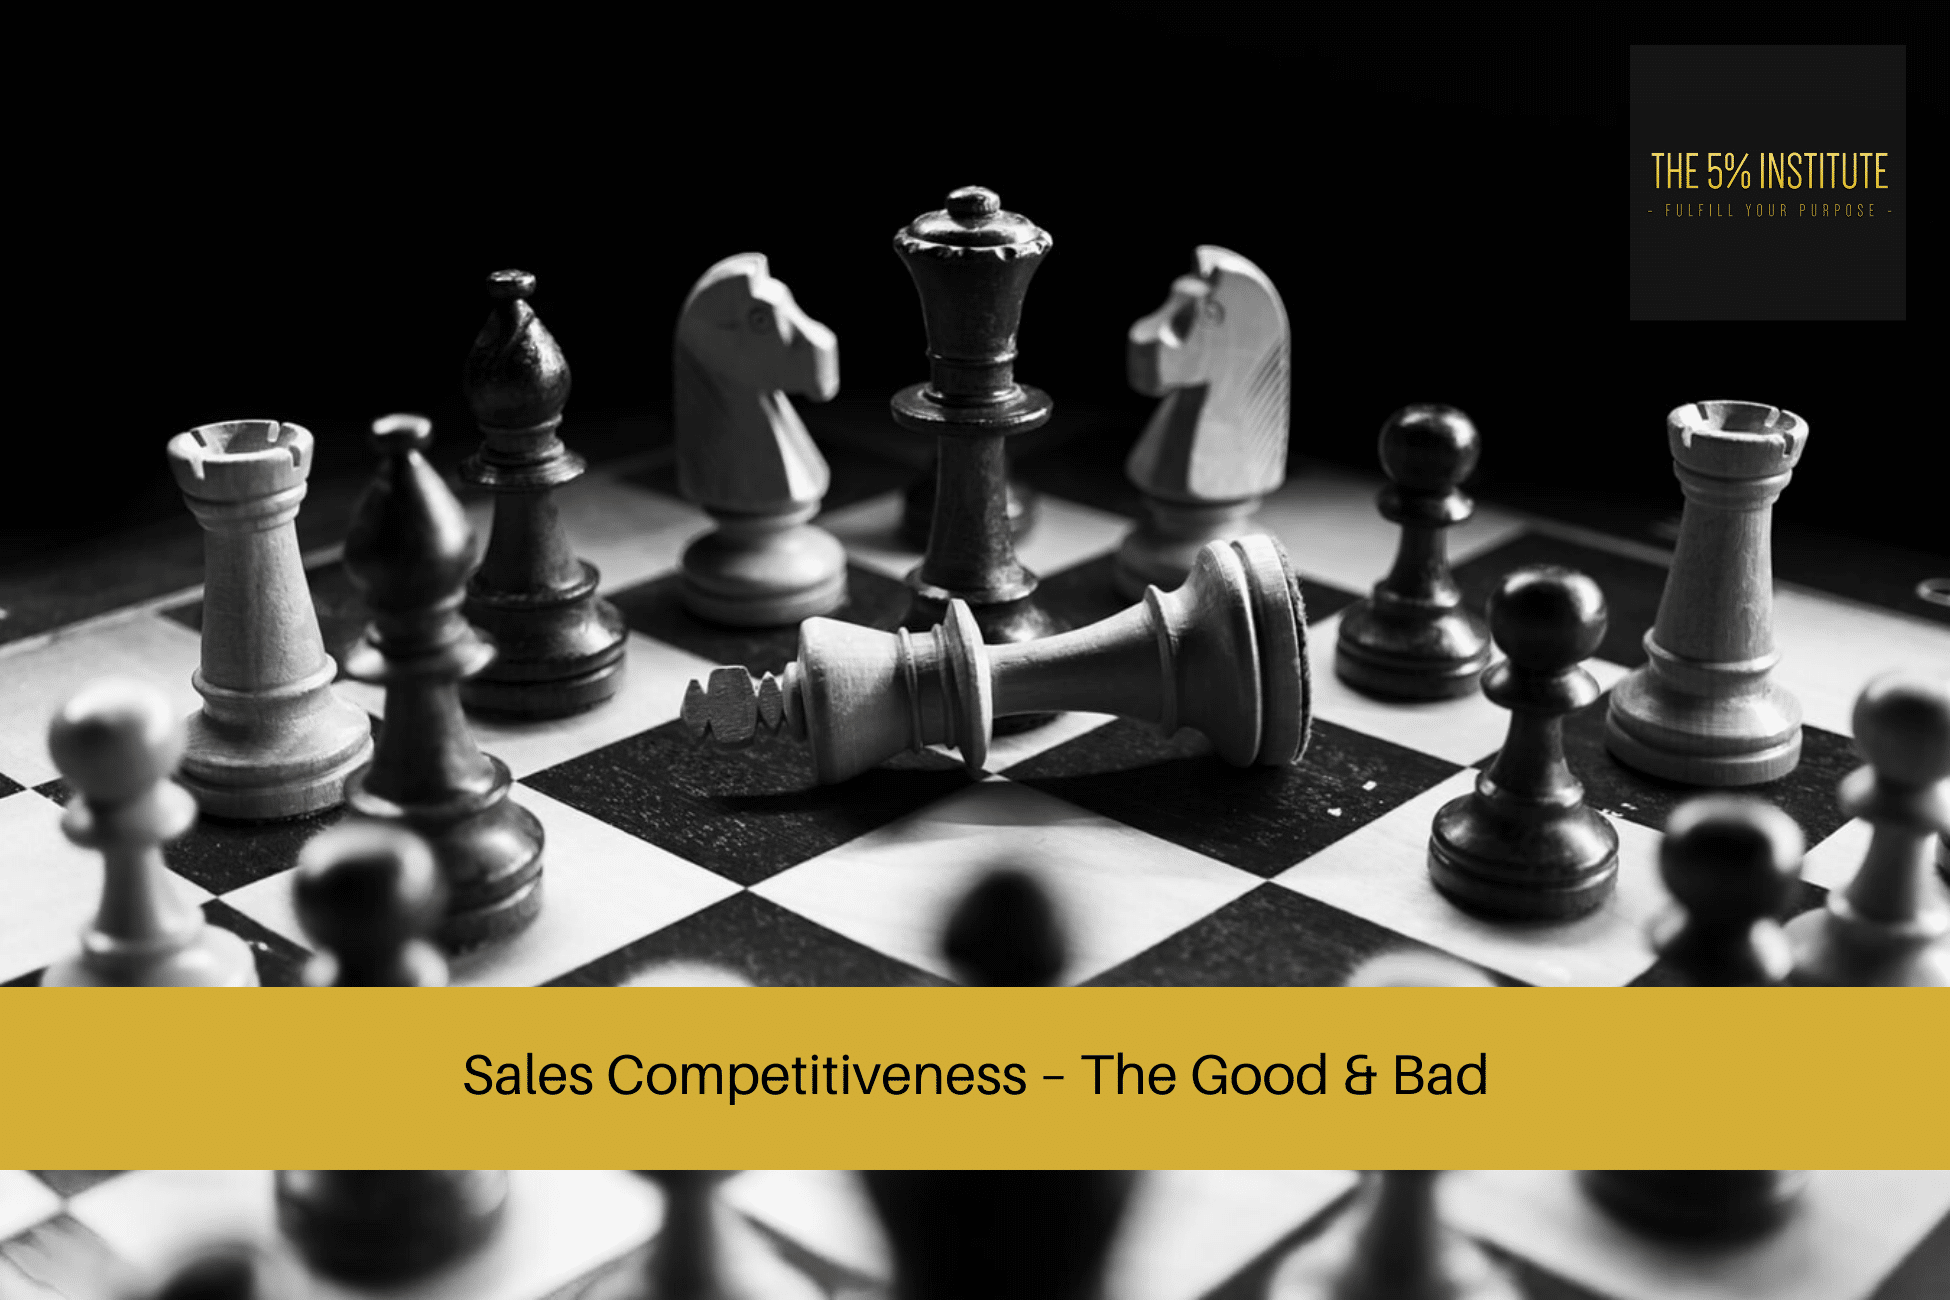 Sales Competitiveness